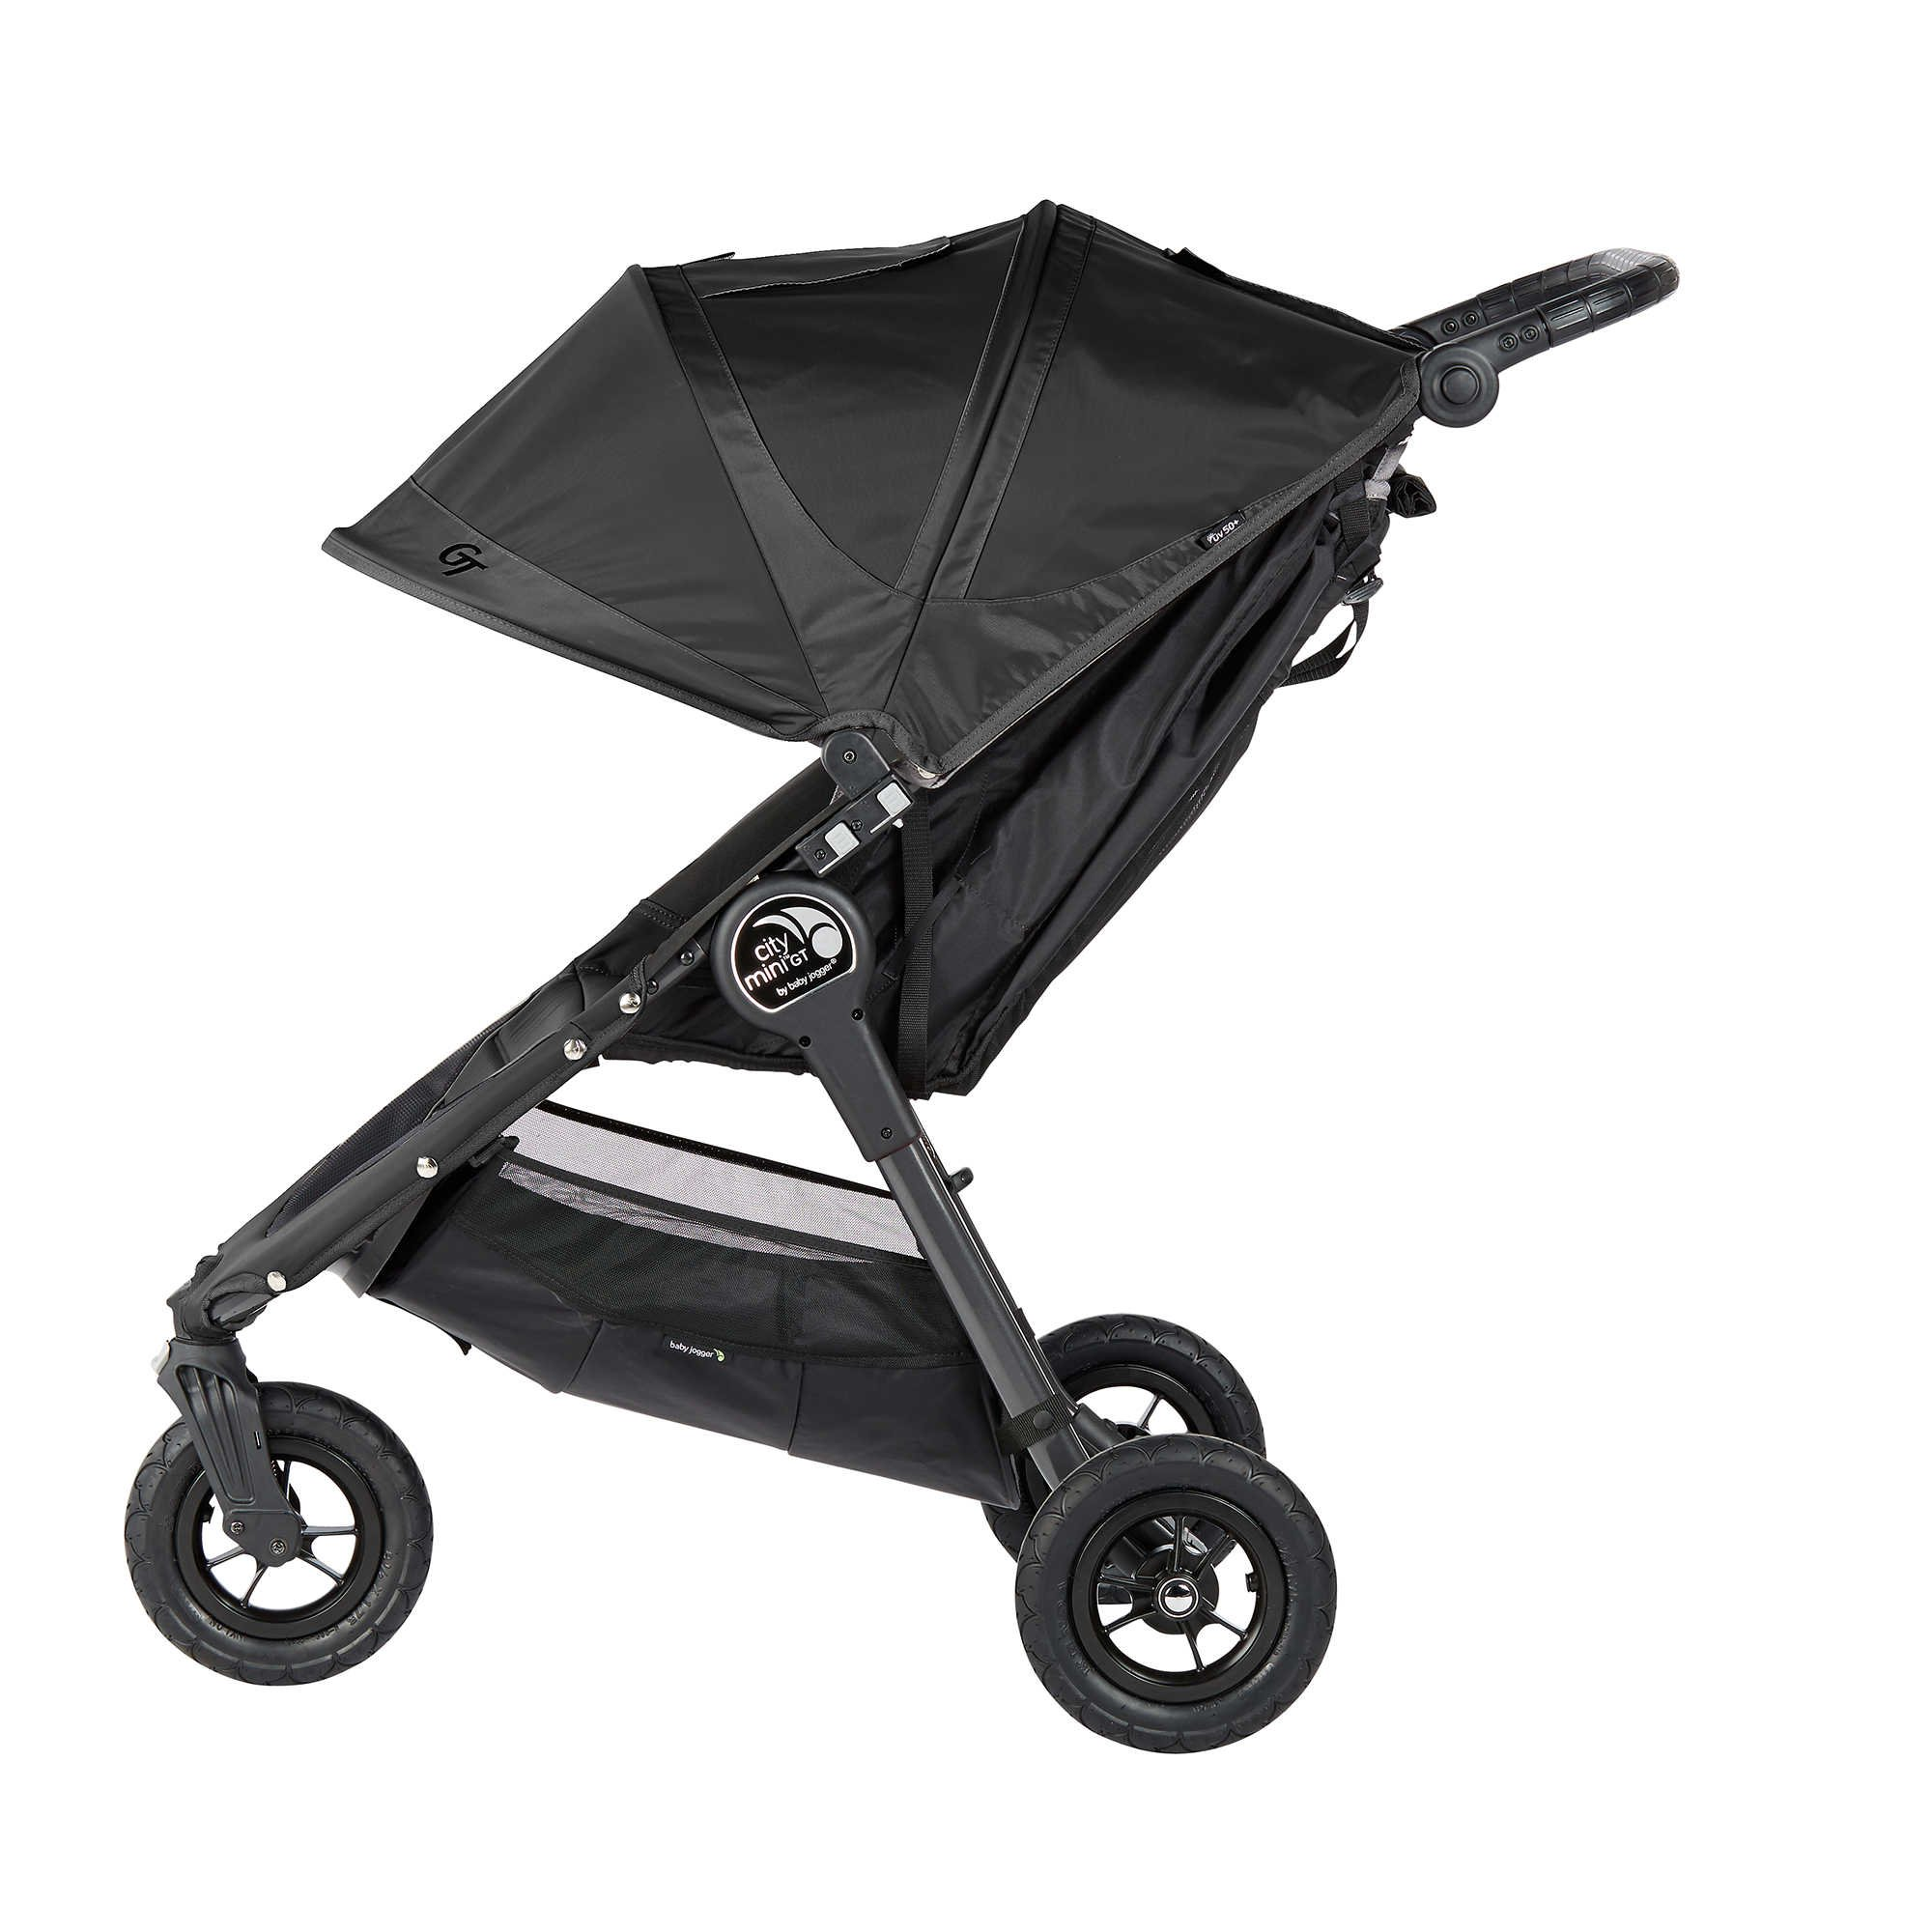 Baby Jogger 2016 City Mini GT Stroller in Black with Parent Console by Baby Jogger (Image #2)